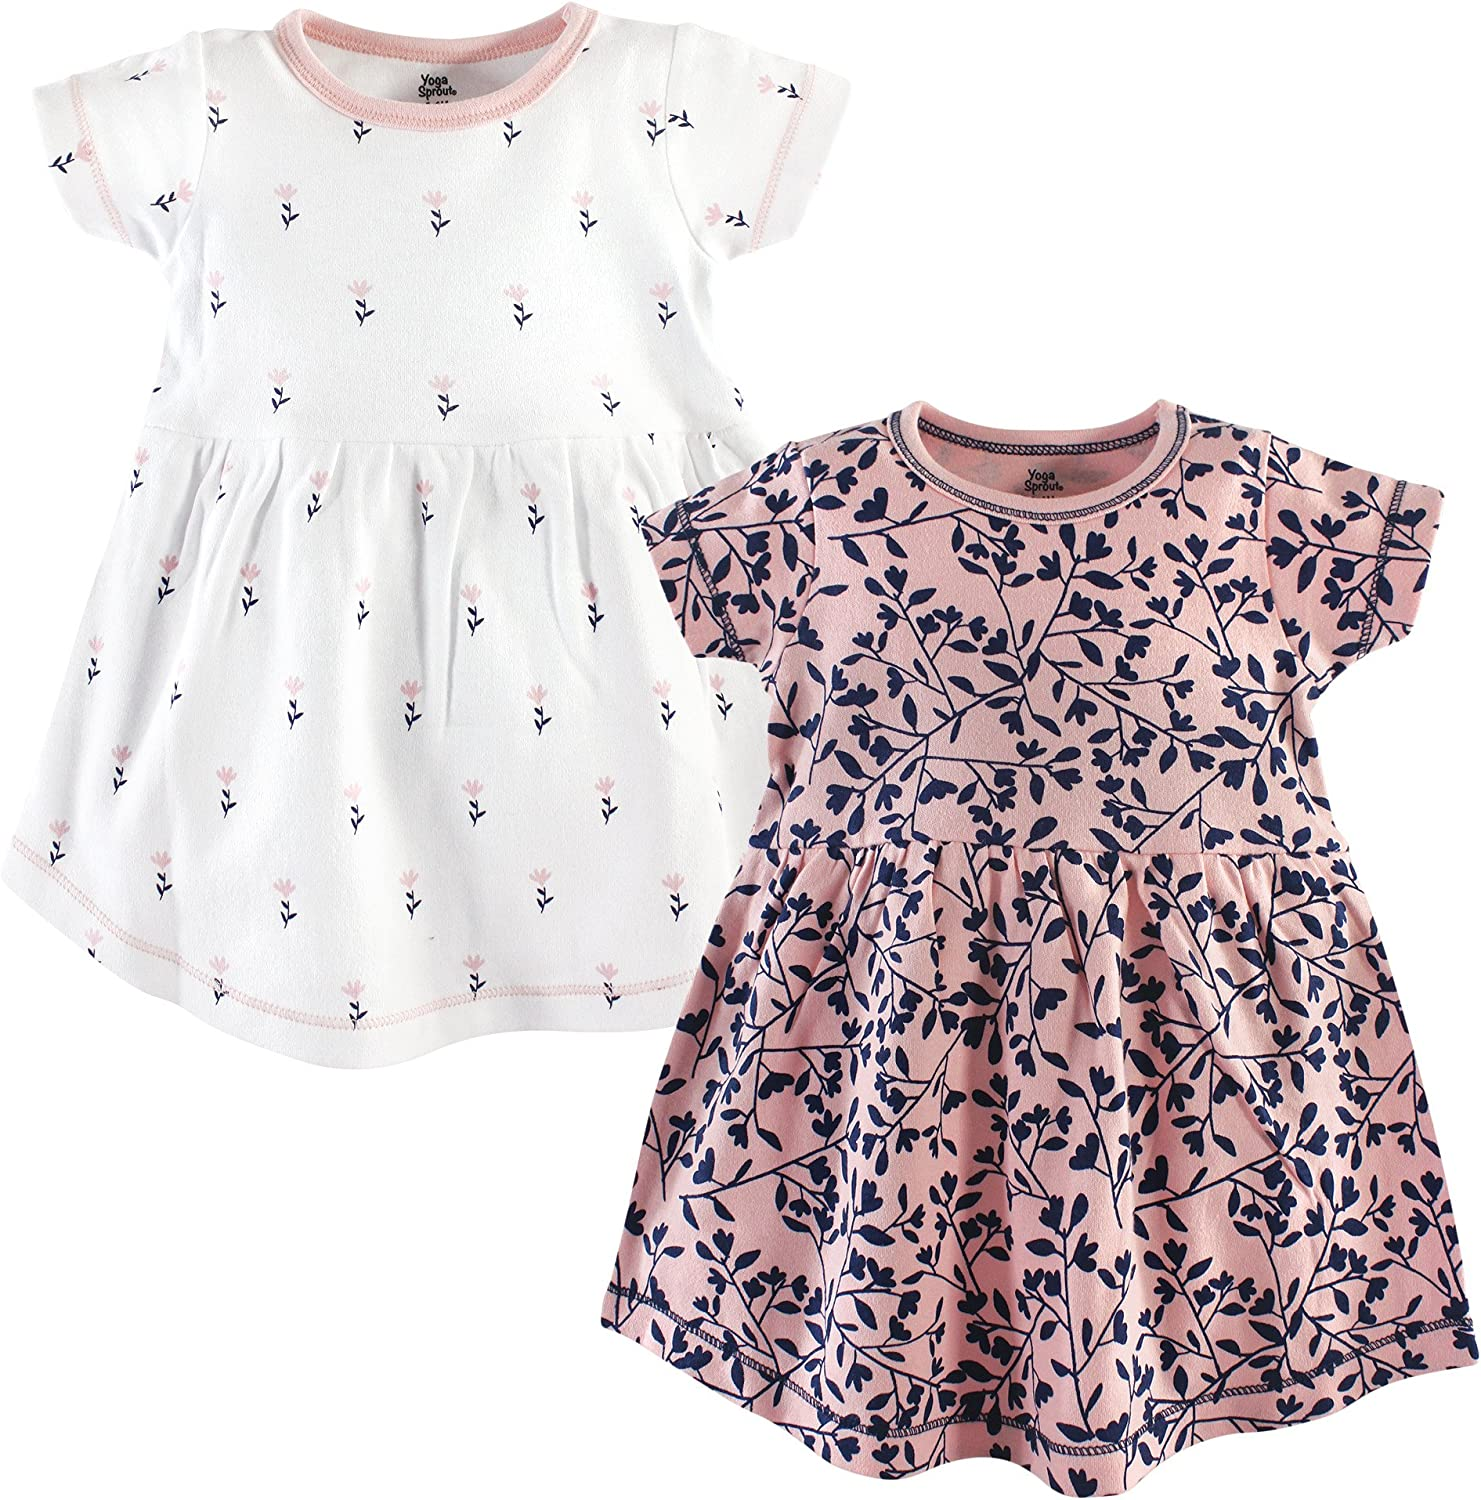 Yoga Sprout Baby Girls Cotton Dress, 2 Pack